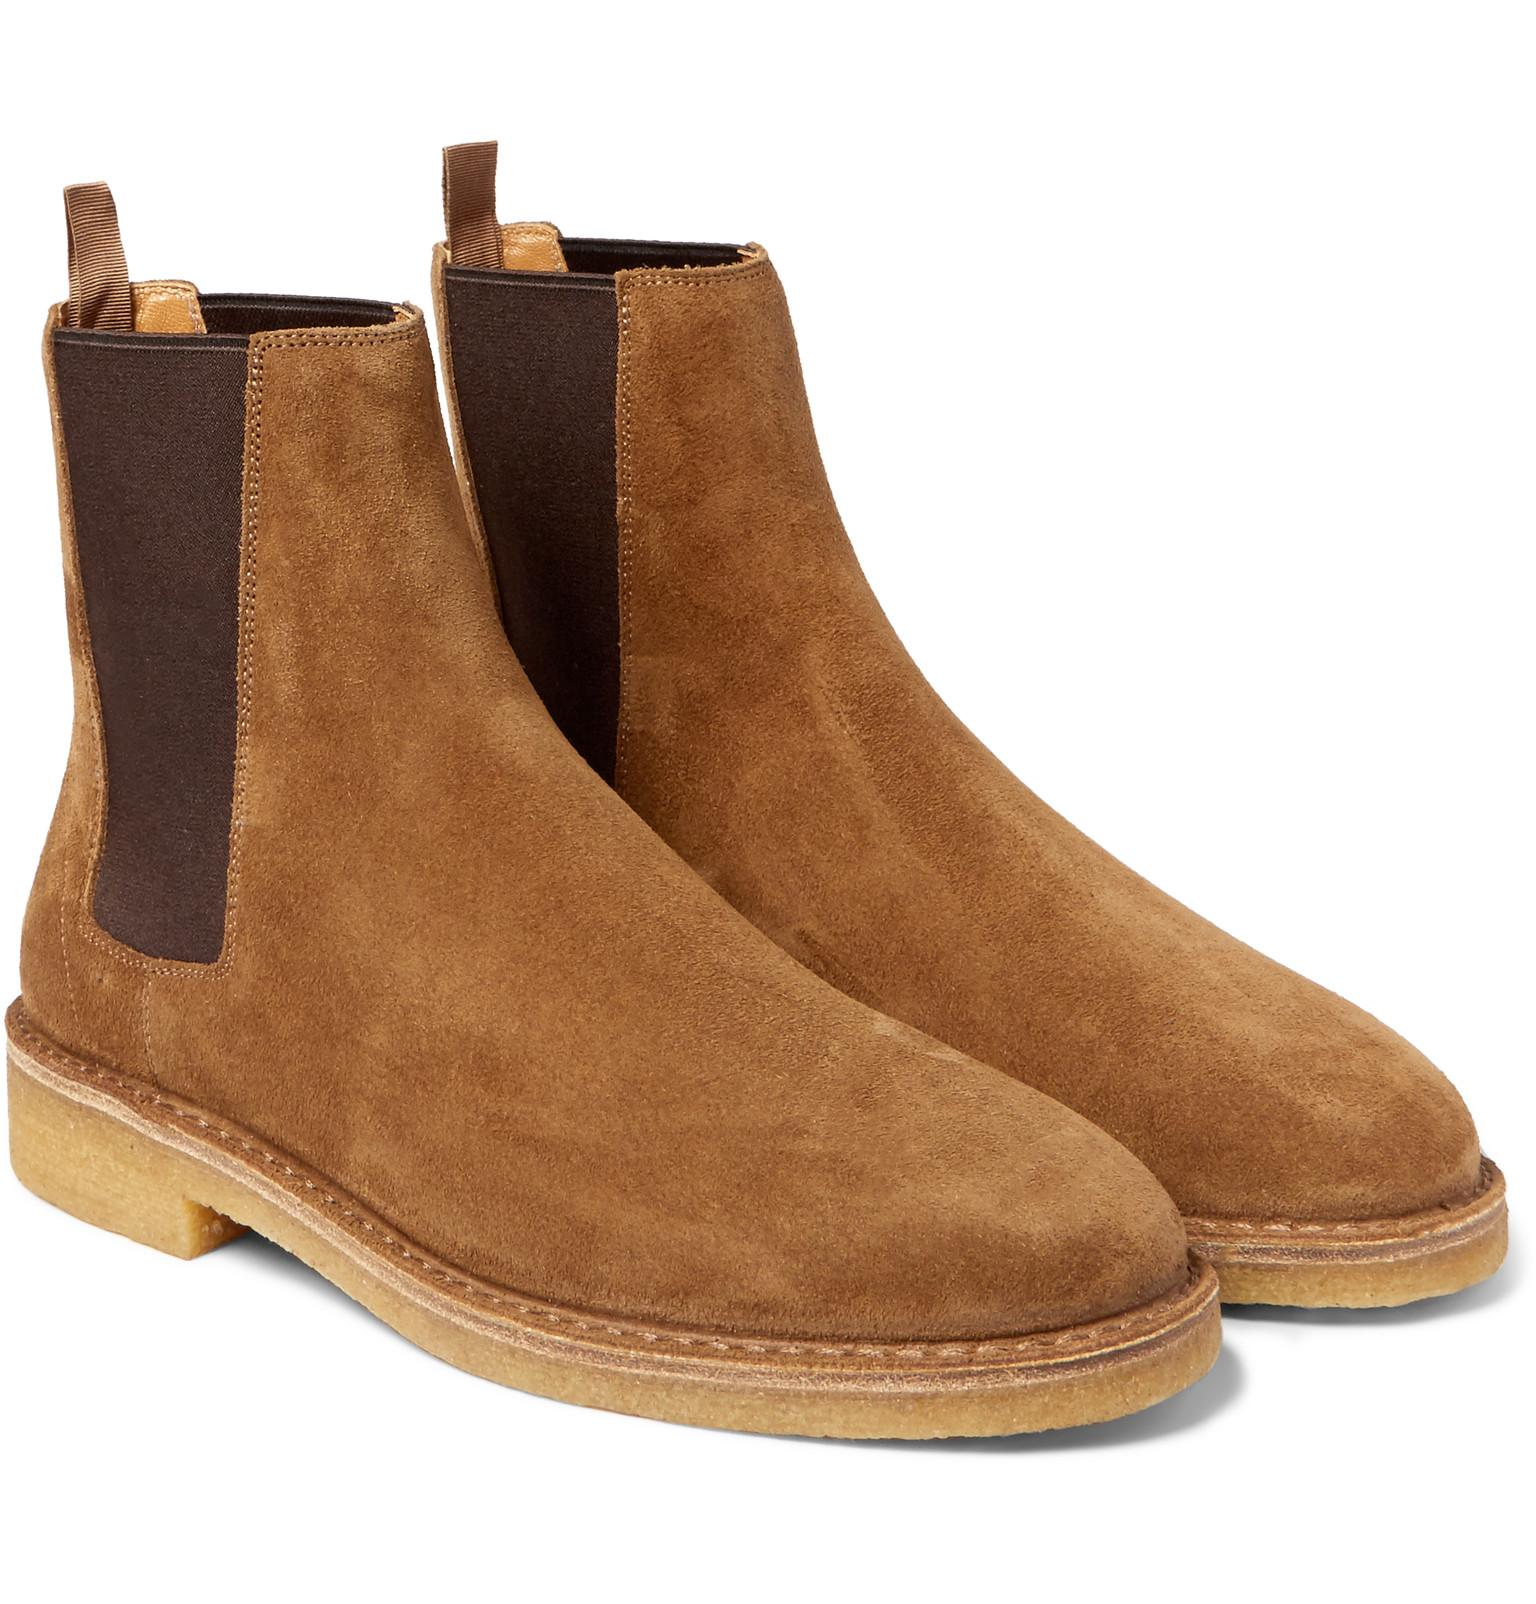 ea6afb3829626 Lyst - Saint Laurent Cigar Suede Chelsea Boots in Brown for Men